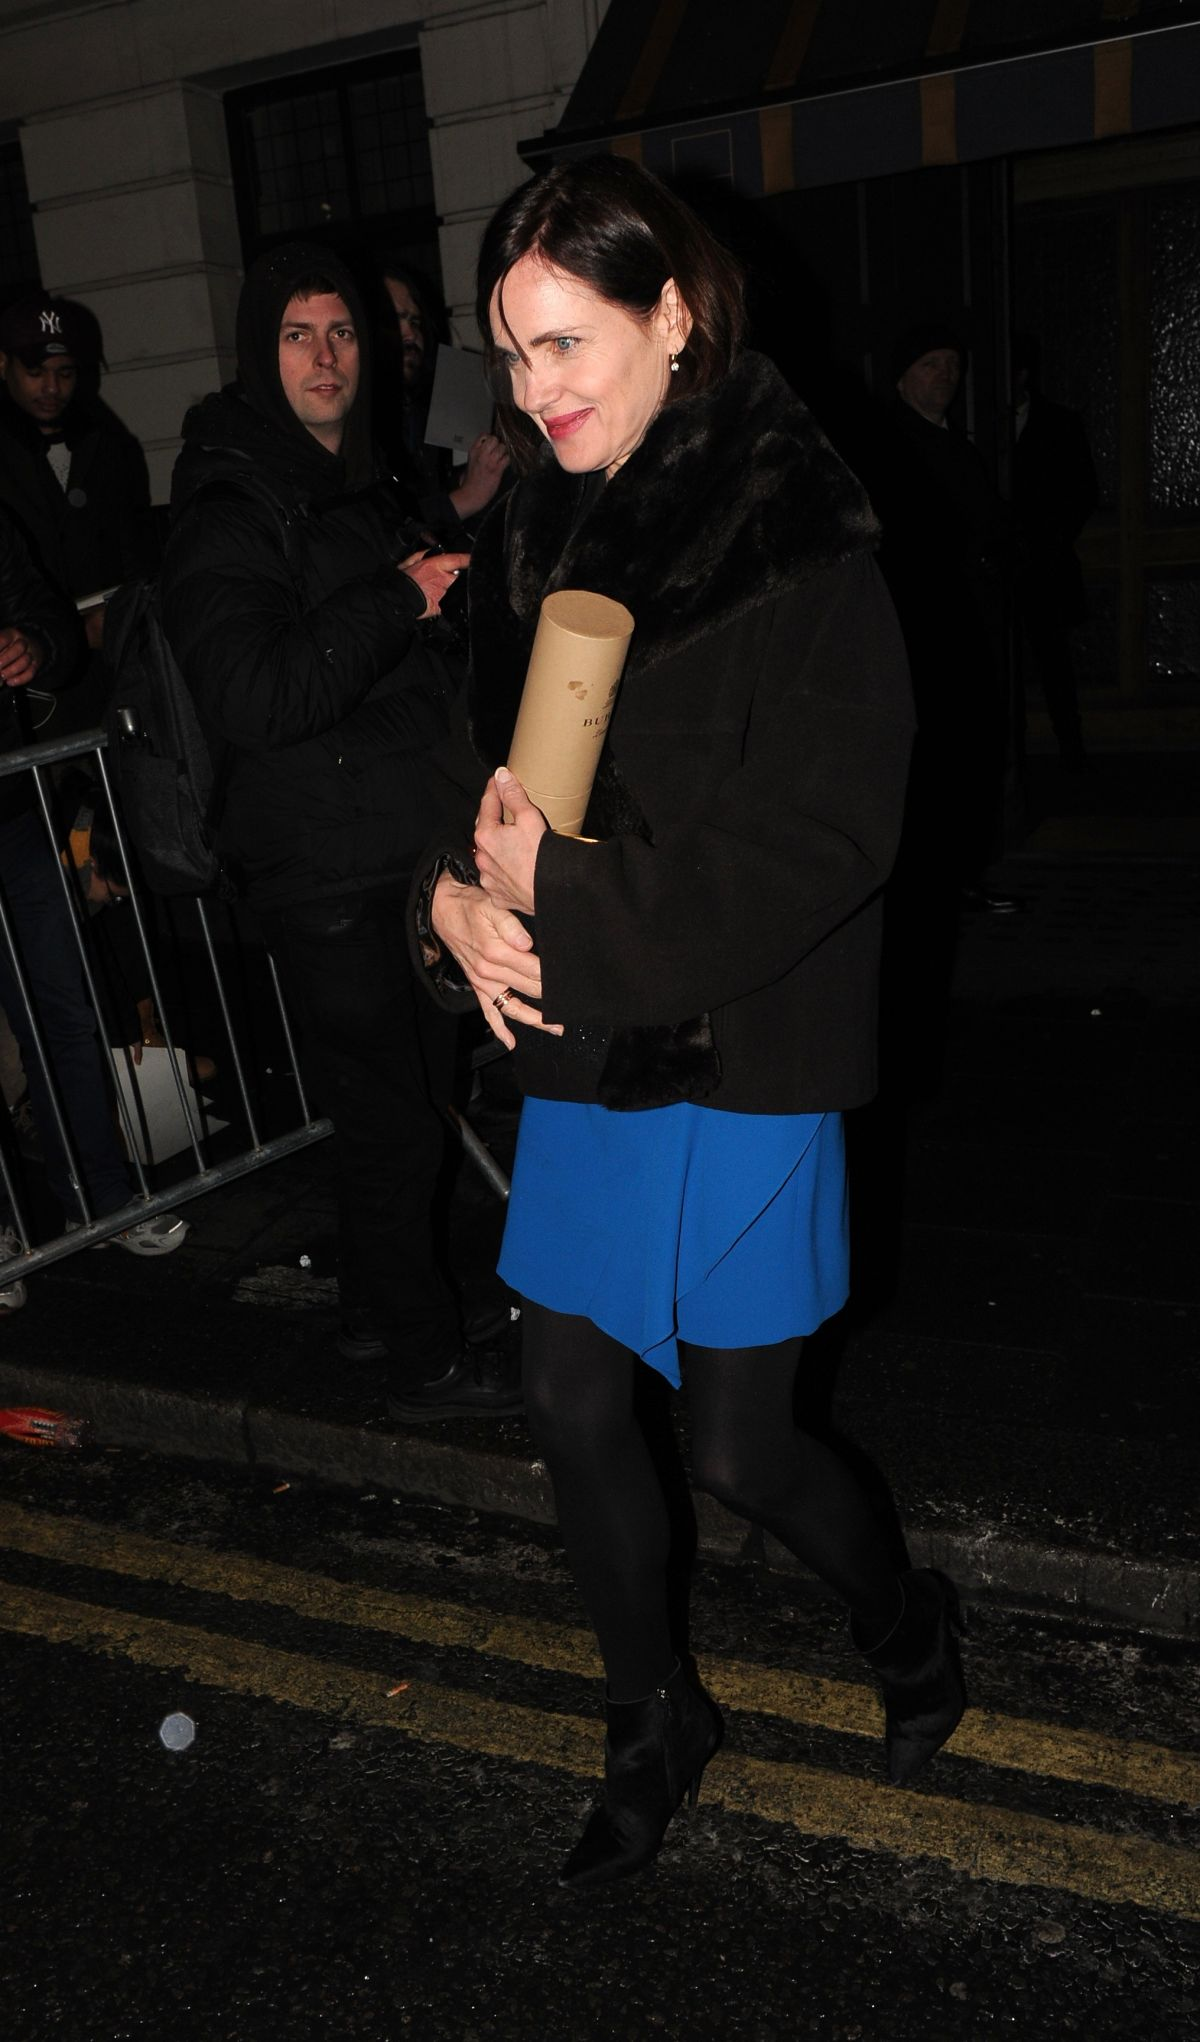 Elizabeth mcgovern arrives at harvey weinstein pre baftas dinner in london naked (81 photo), Is a cute Celebrity picture